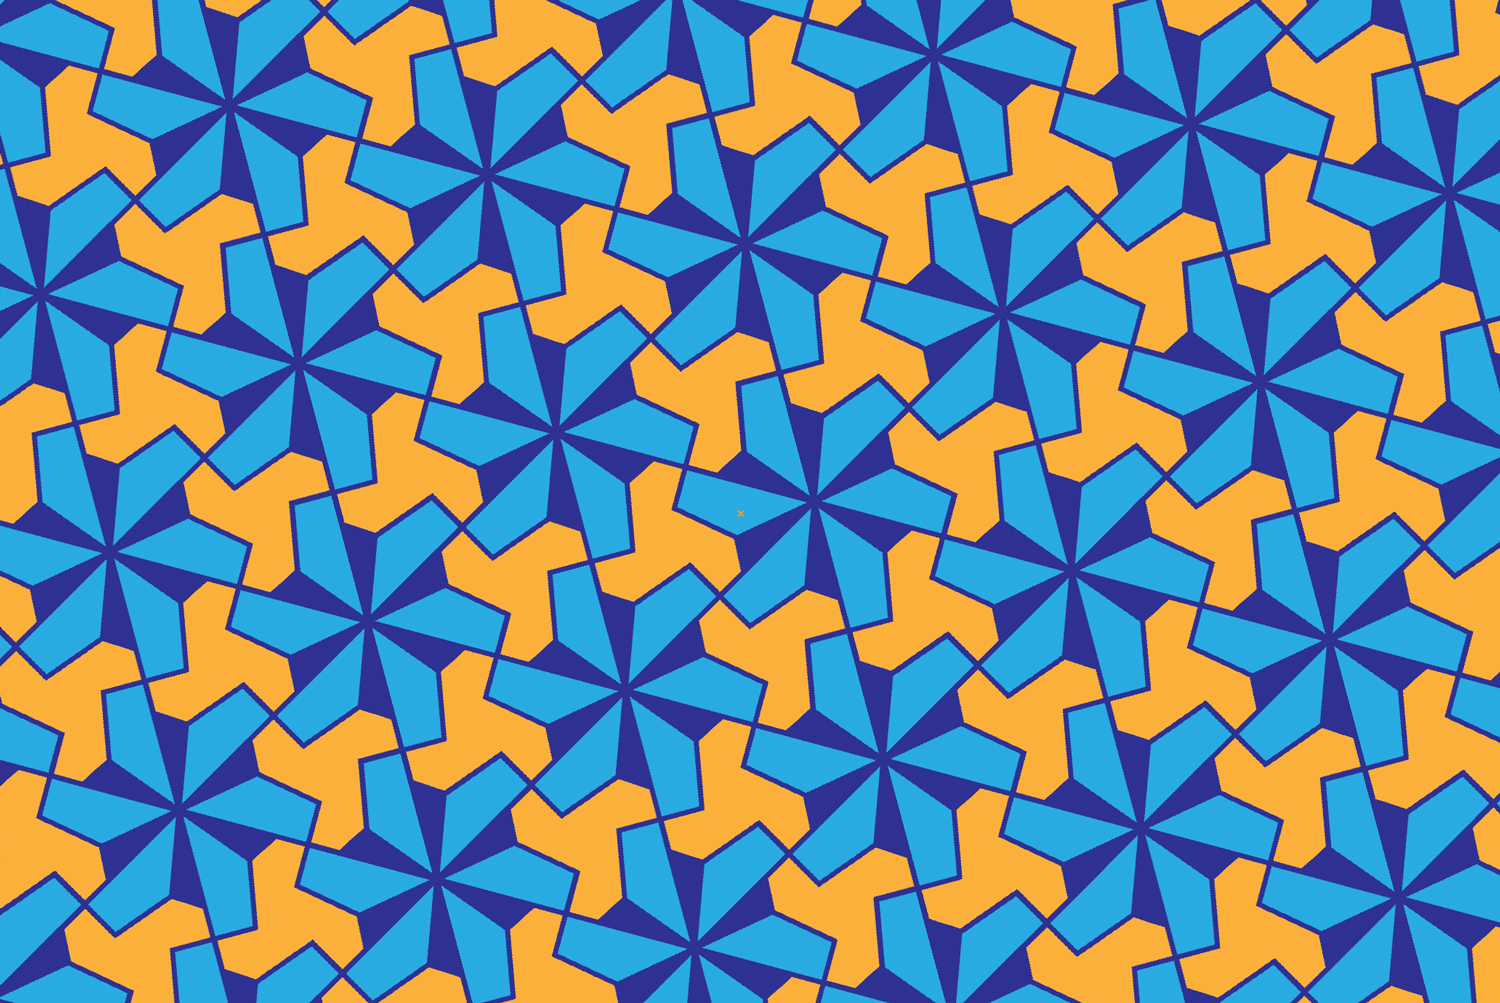 A repeating pattern based on a 24-sided star in Adobe Illustrator